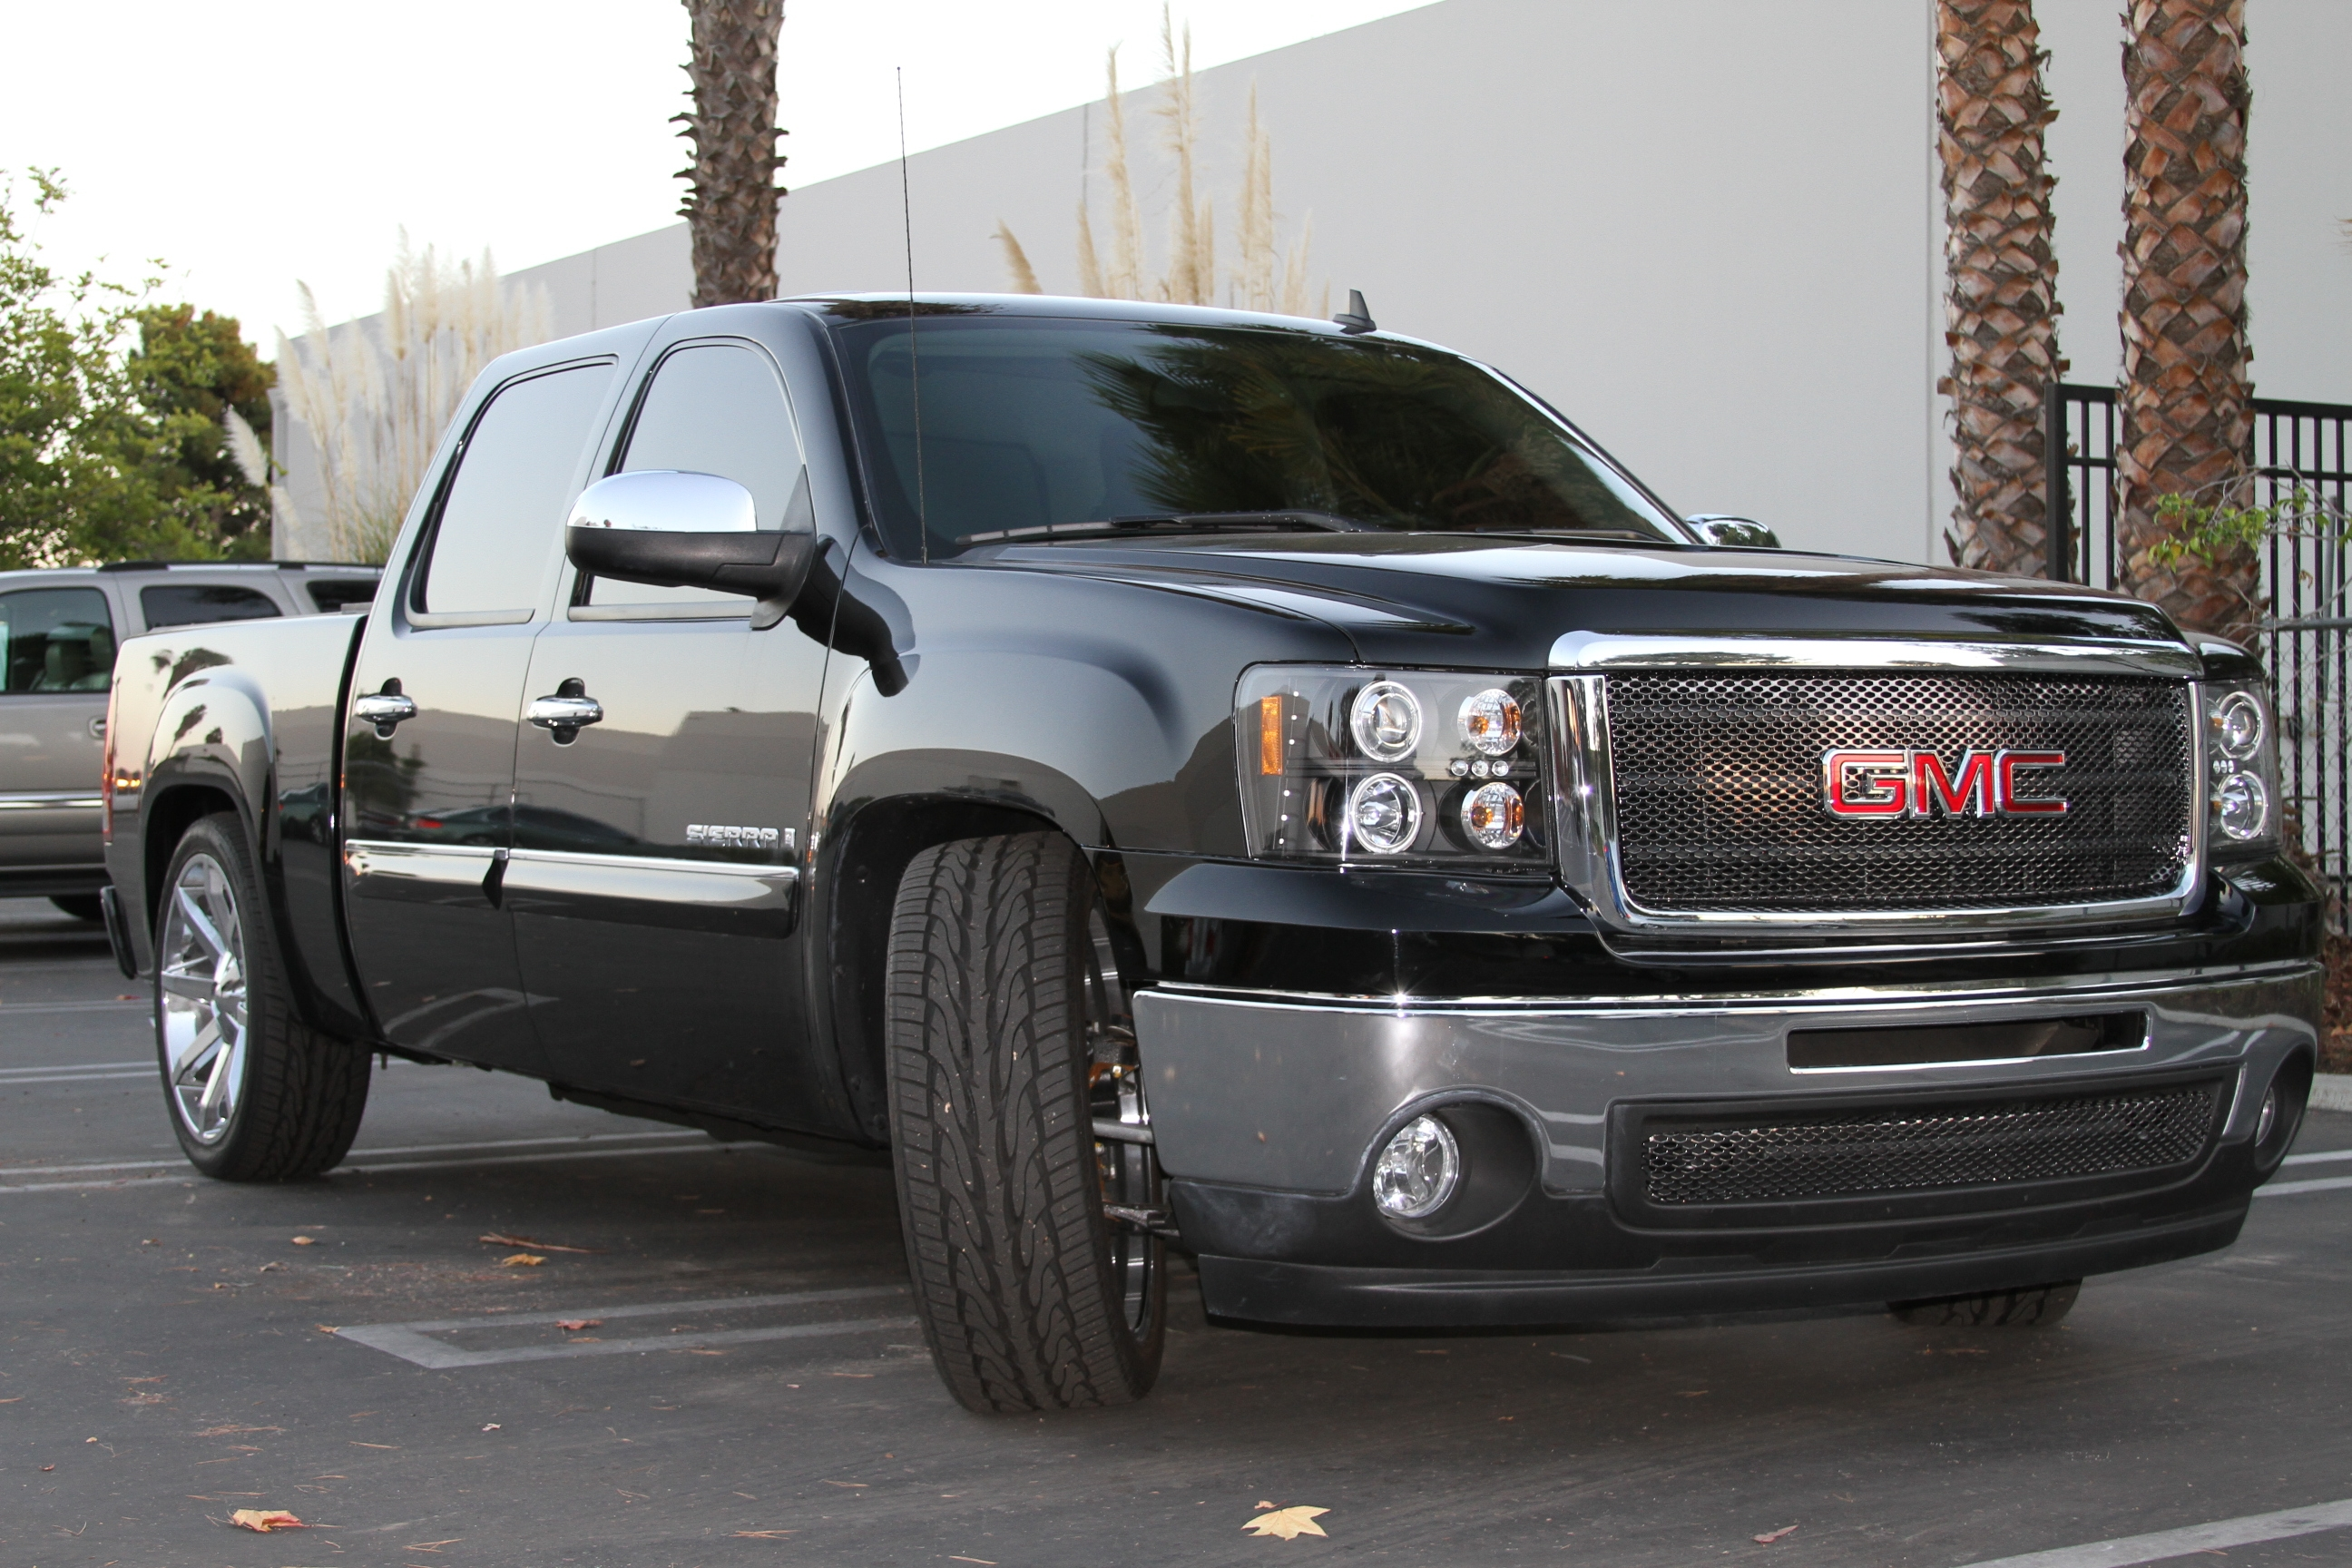 frstrtdmac 2009 gmc sierra 1500 regular cab specs photos modification info at cardomain. Black Bedroom Furniture Sets. Home Design Ideas